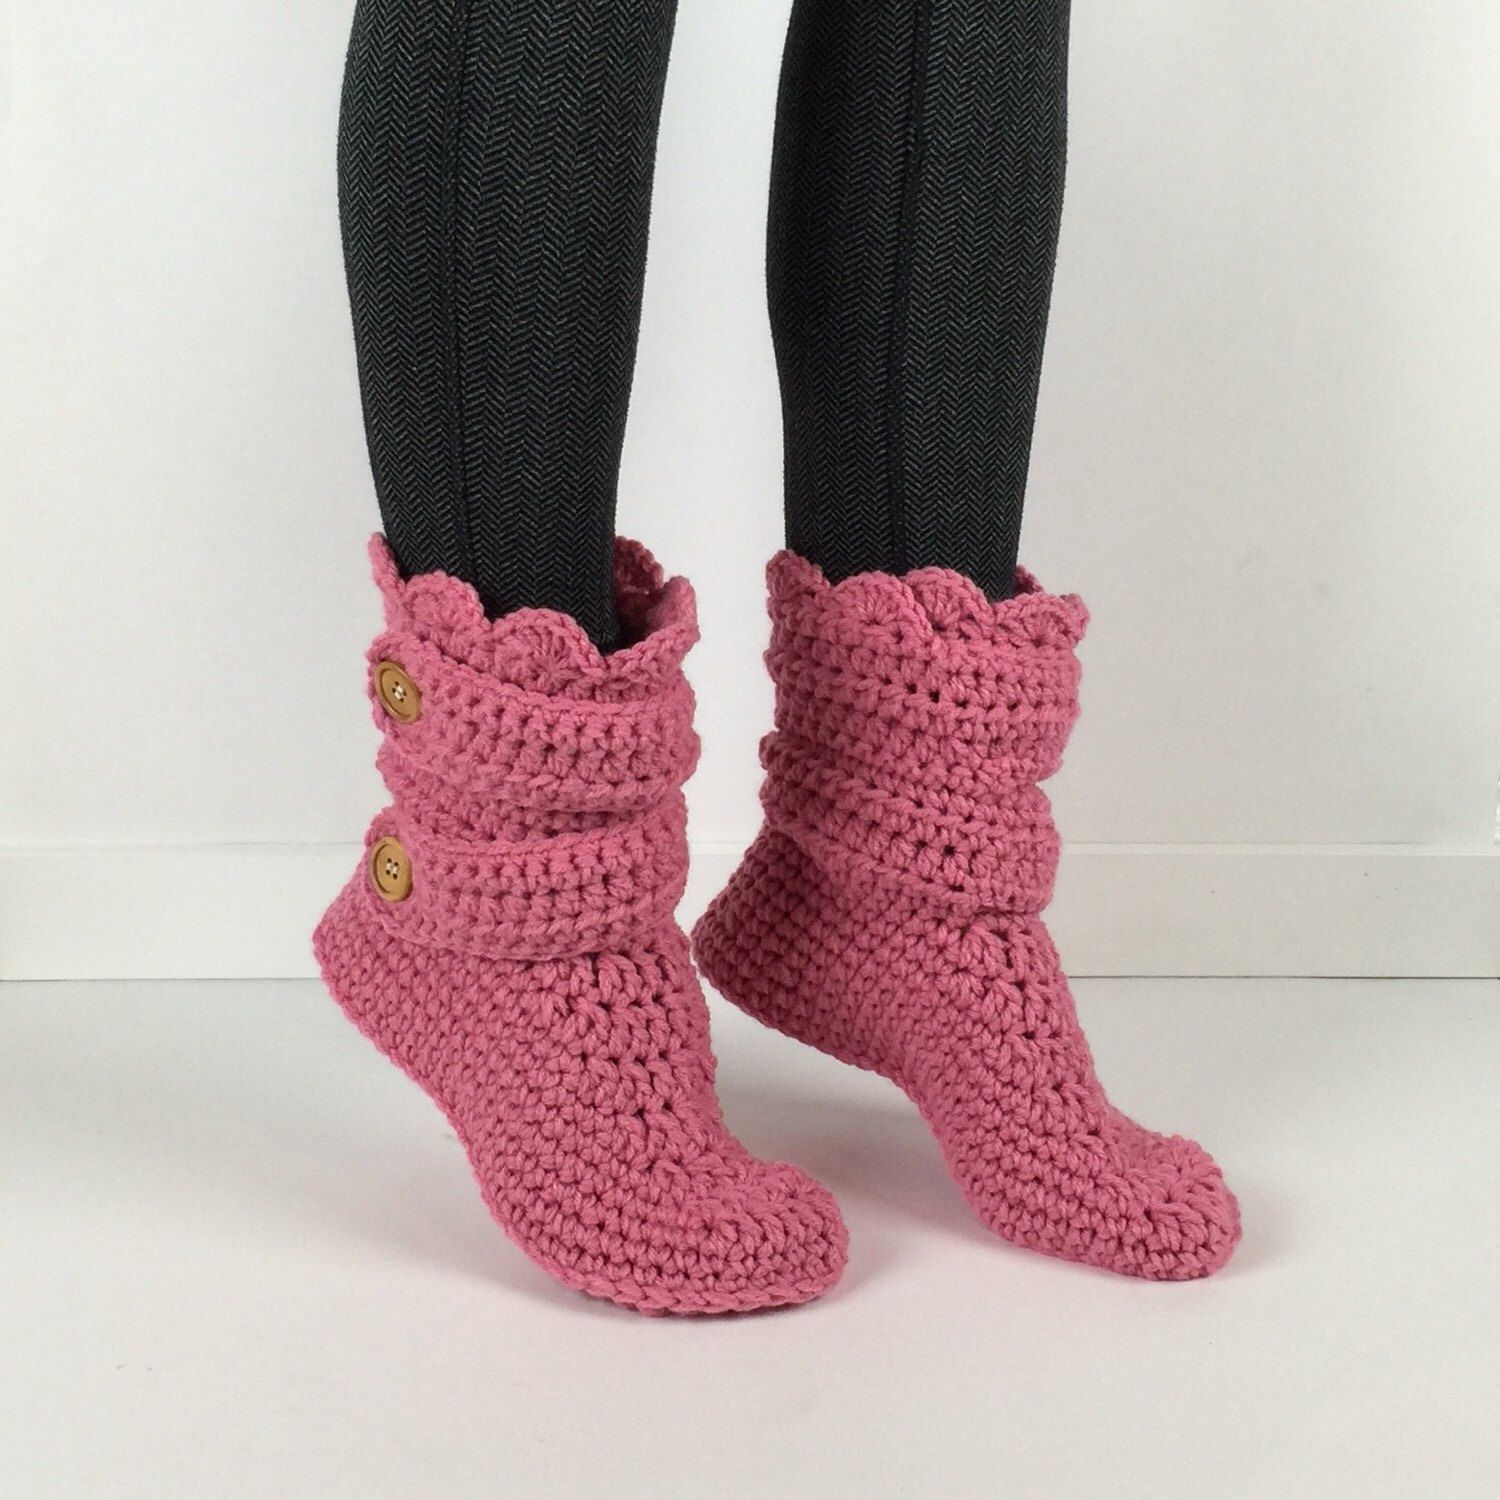 Womens crochet pink slipper boots crochet slippers crochet womens crochet pink slipper boots crochet slippers crochet booties crochet house shoes bankloansurffo Image collections